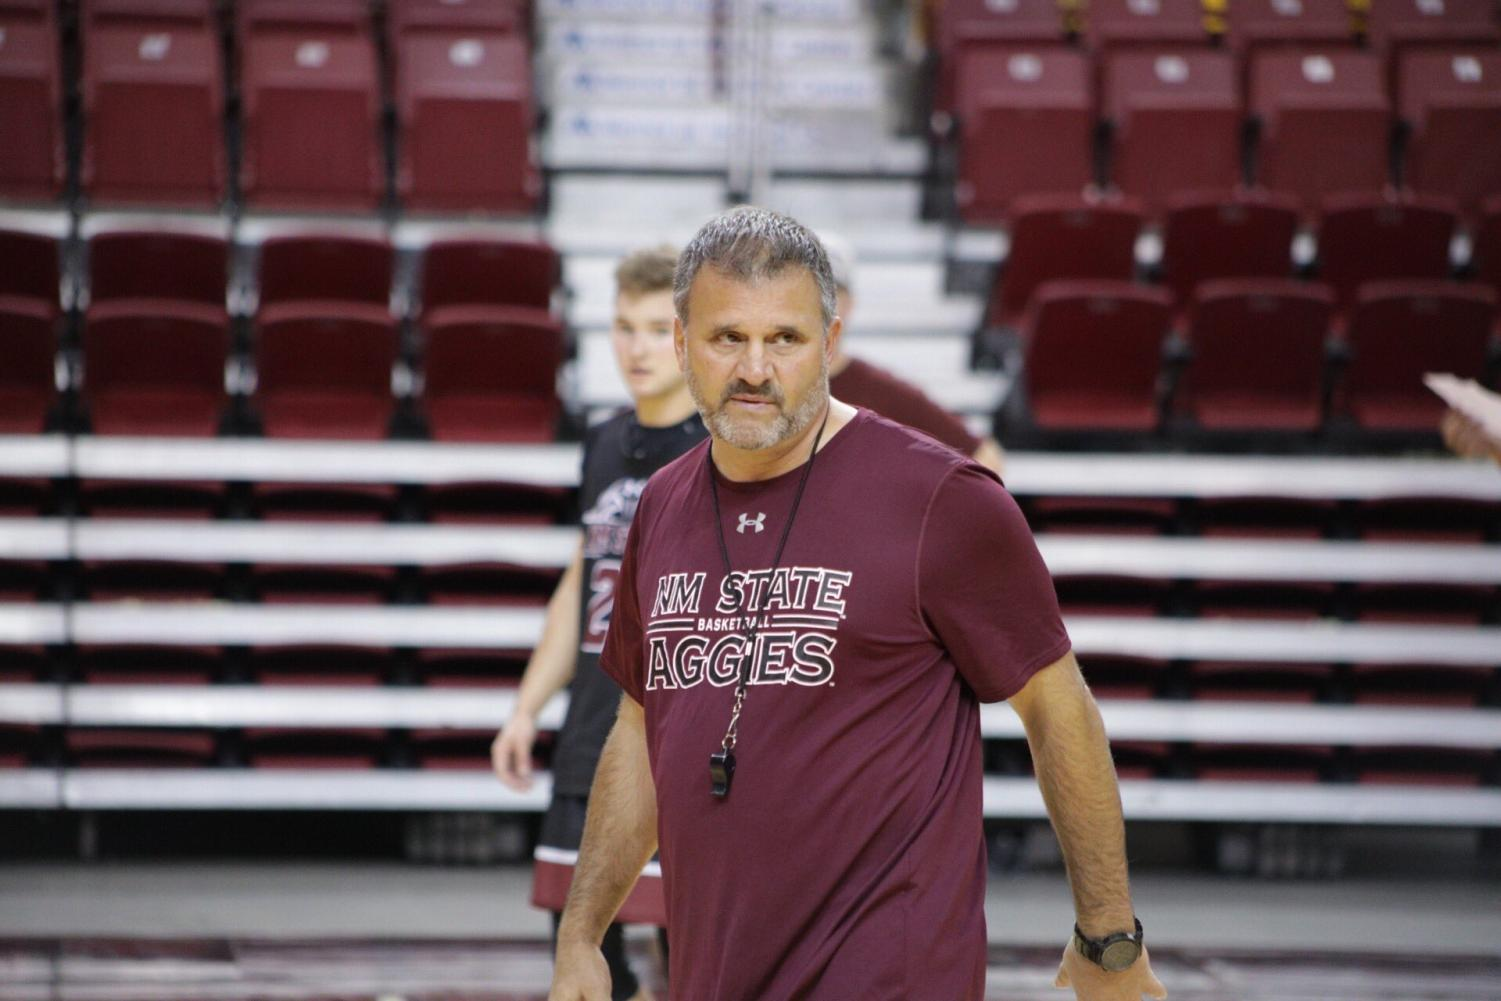 NM State enters the year with sky-high expectations after finishing last season with the winningest record in program history and nearly knocking off what was a Final Four team in Auburn.